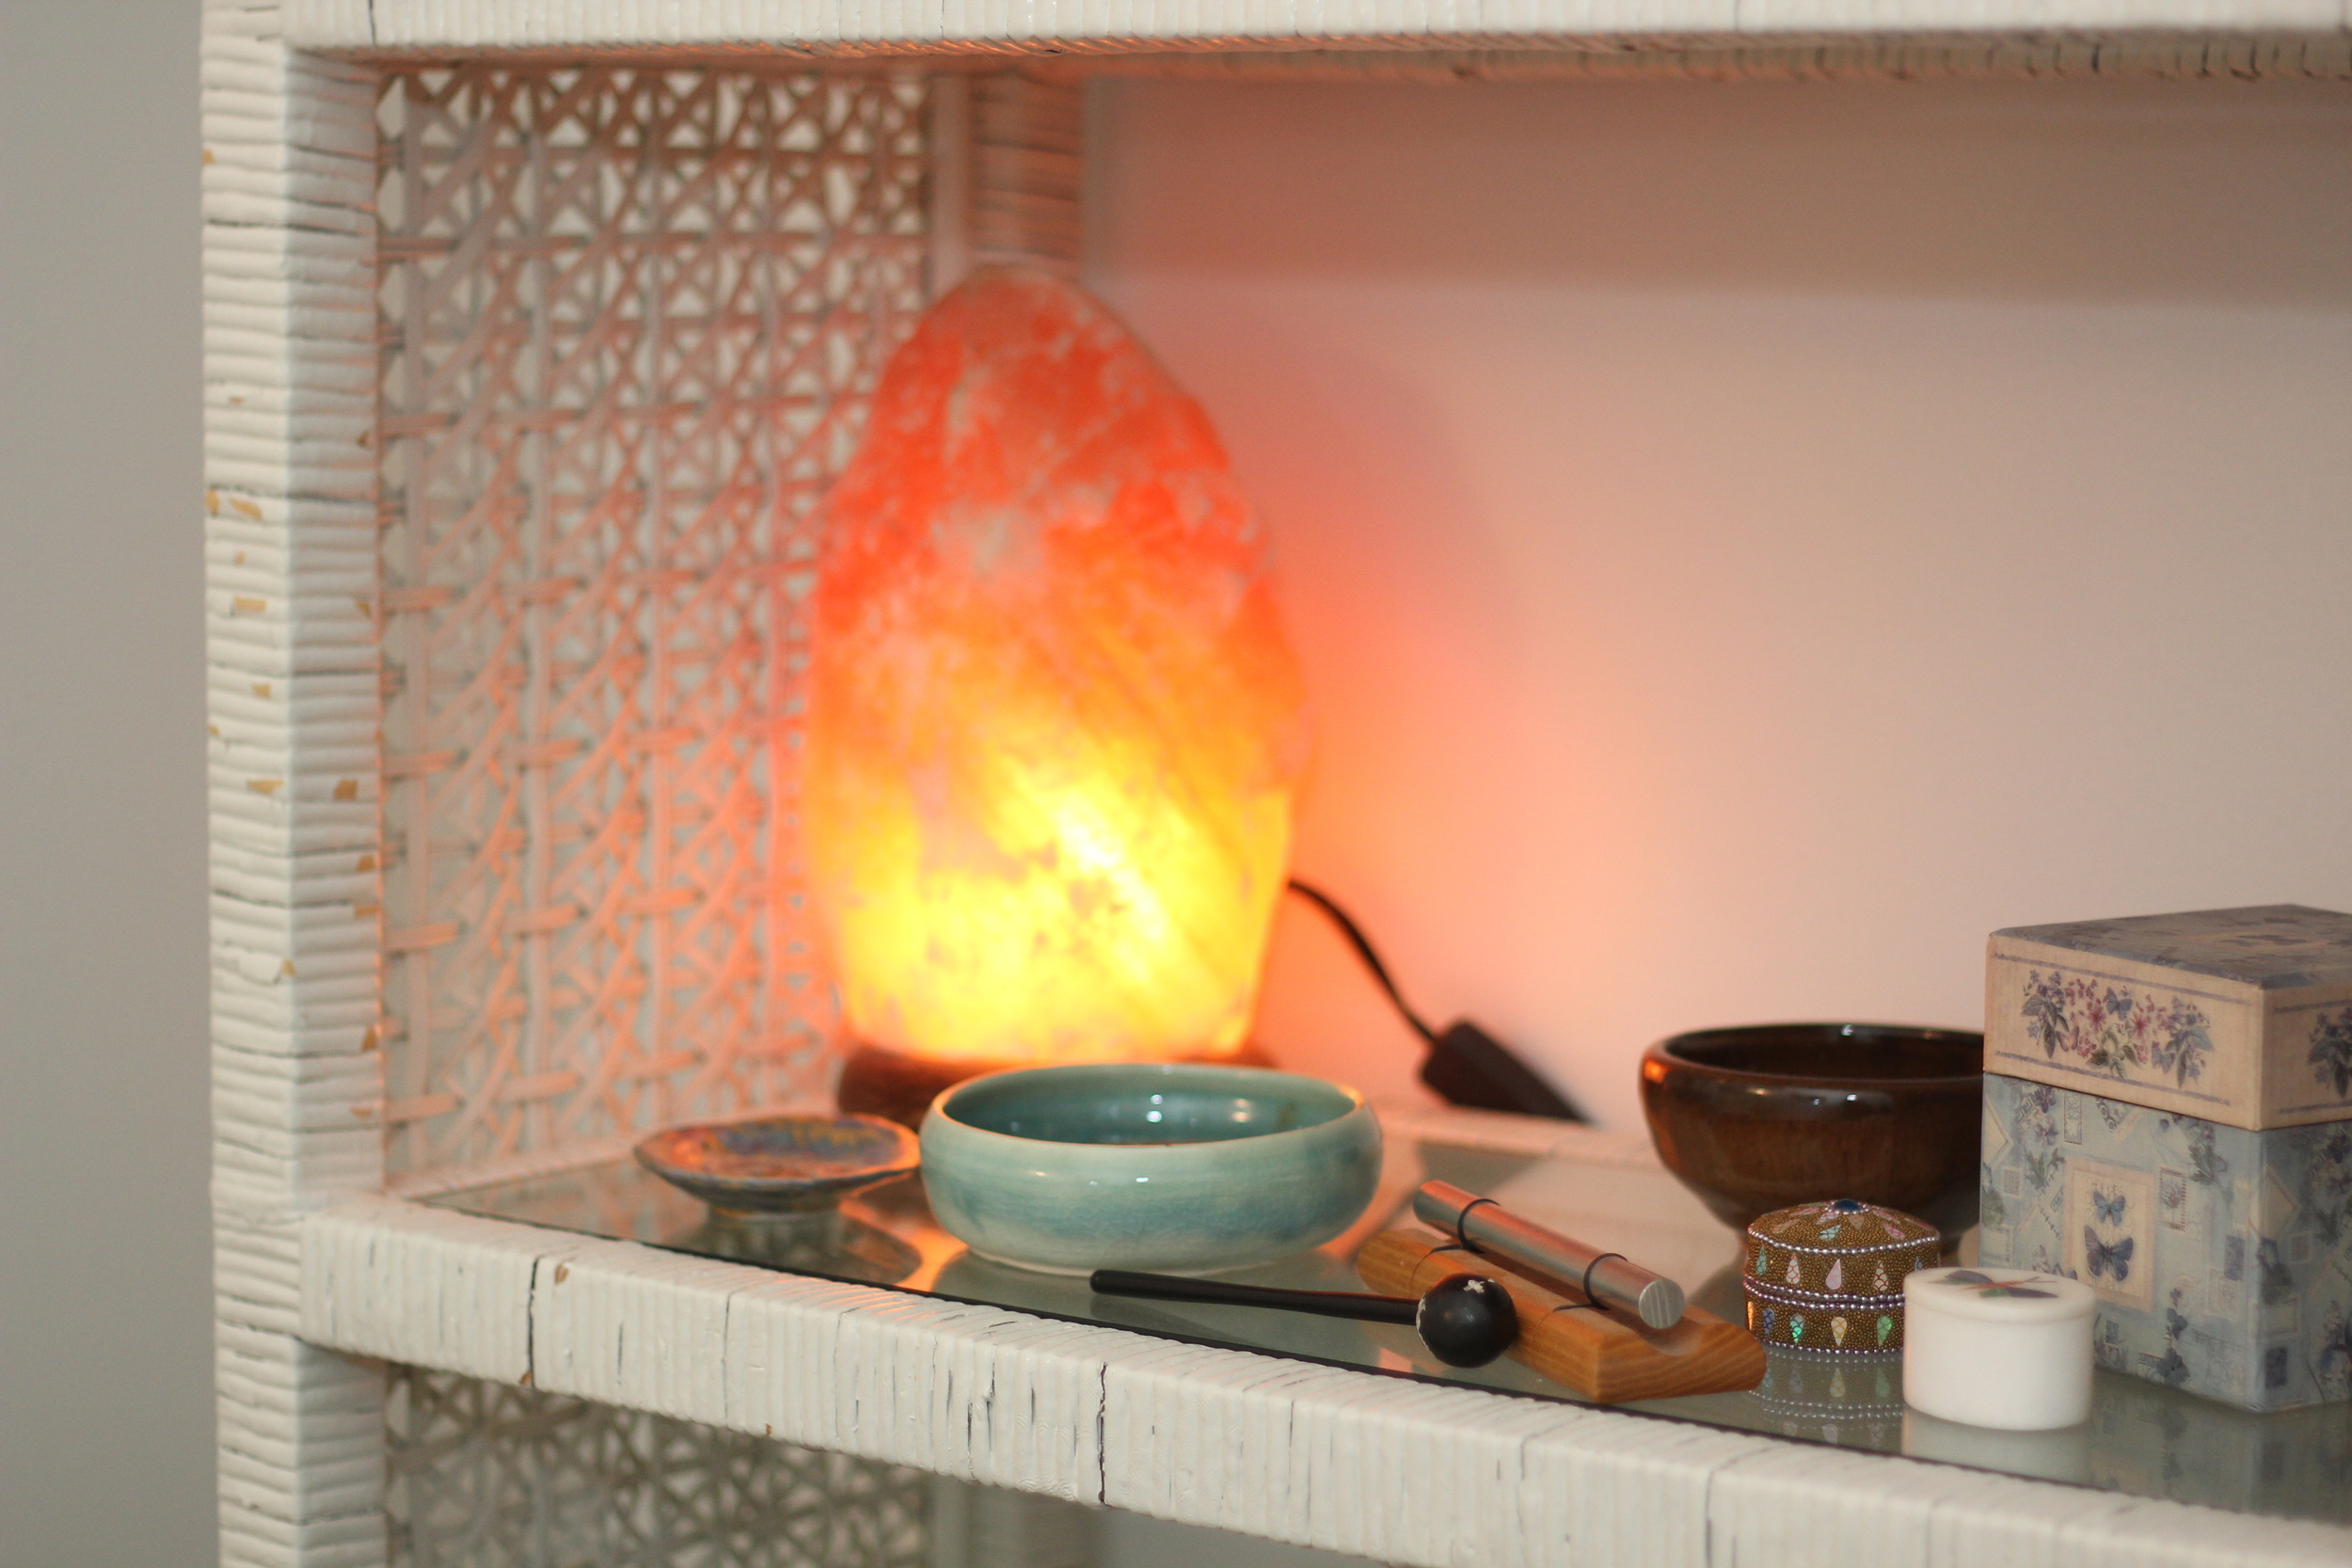 counter with bowls and a gentle flame